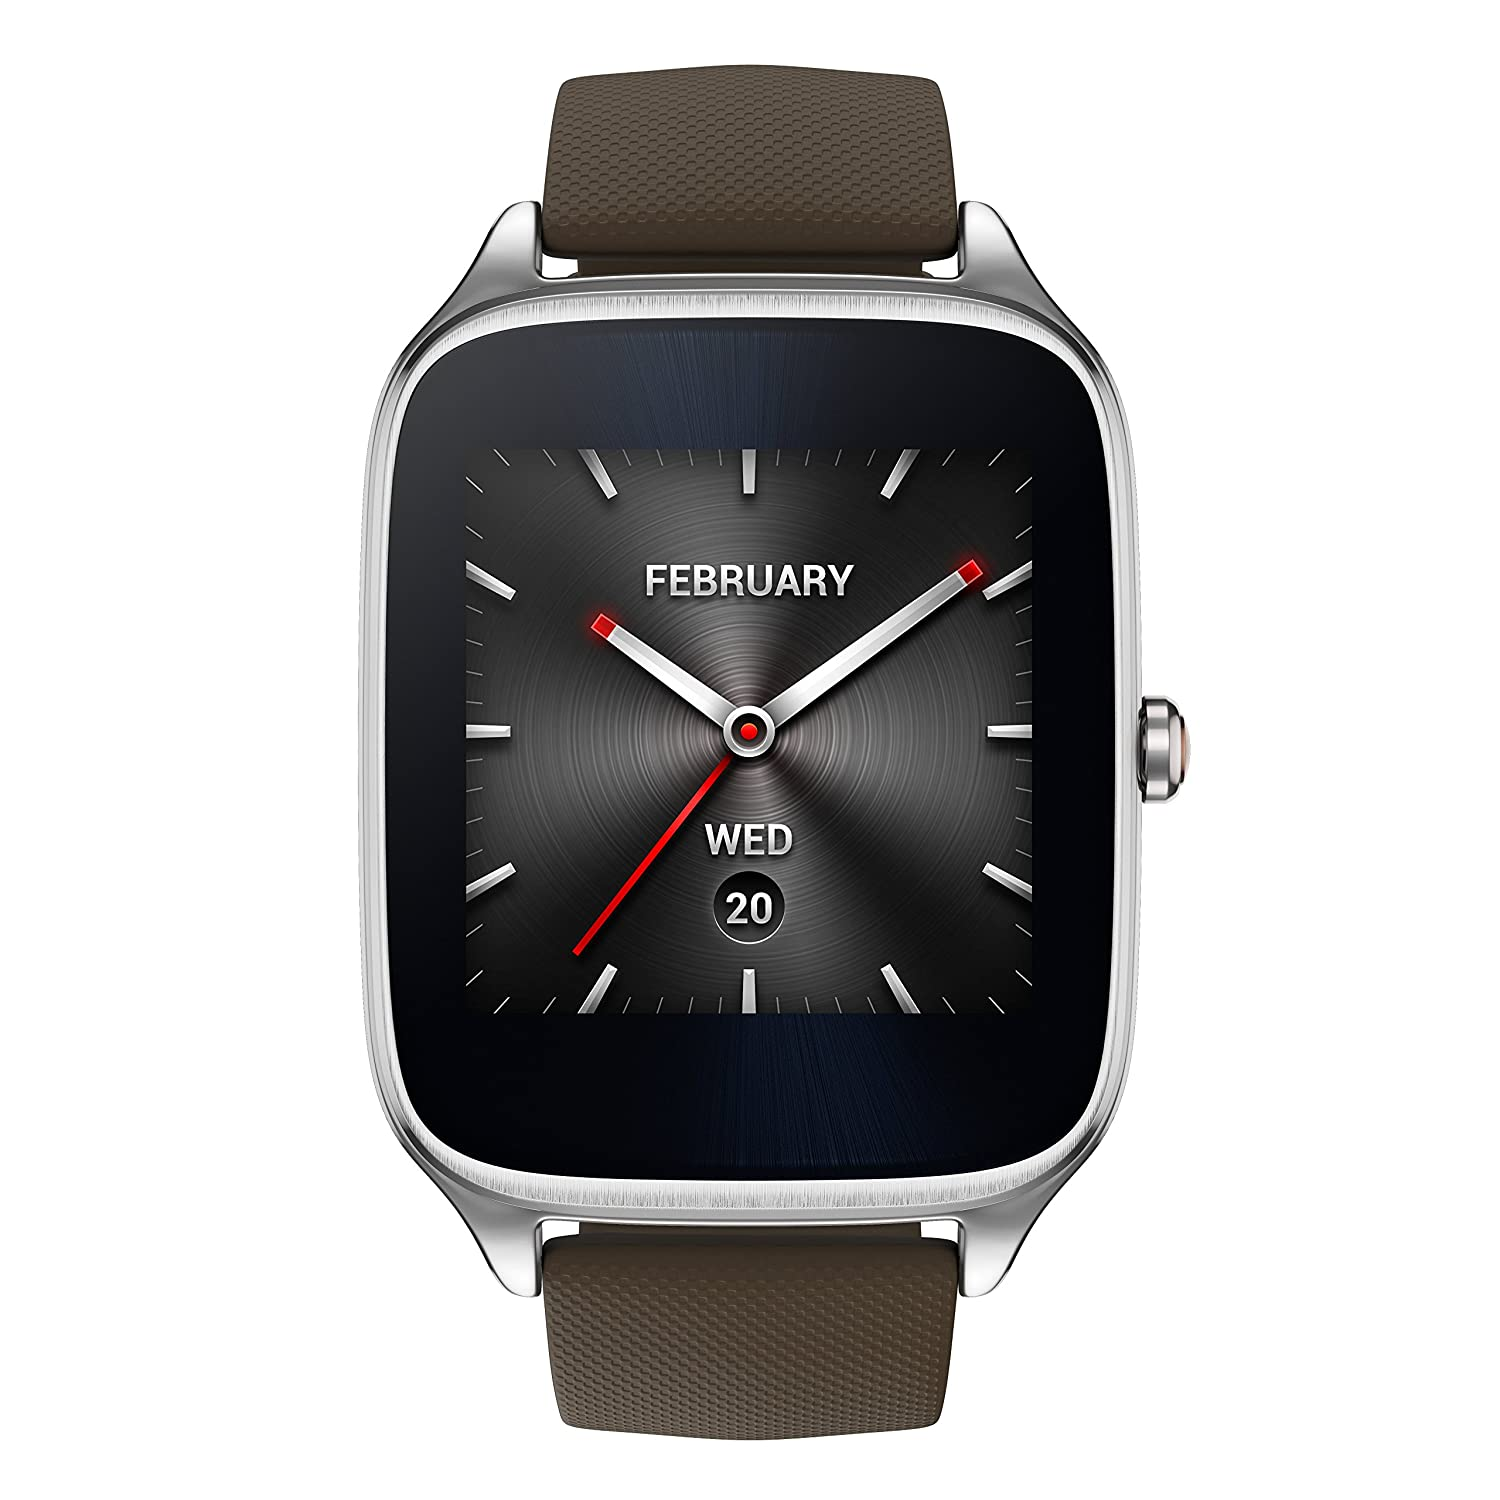 Amazon.com: ASUS ZenWatch 2 Android Wear Smartwatch - 1.63